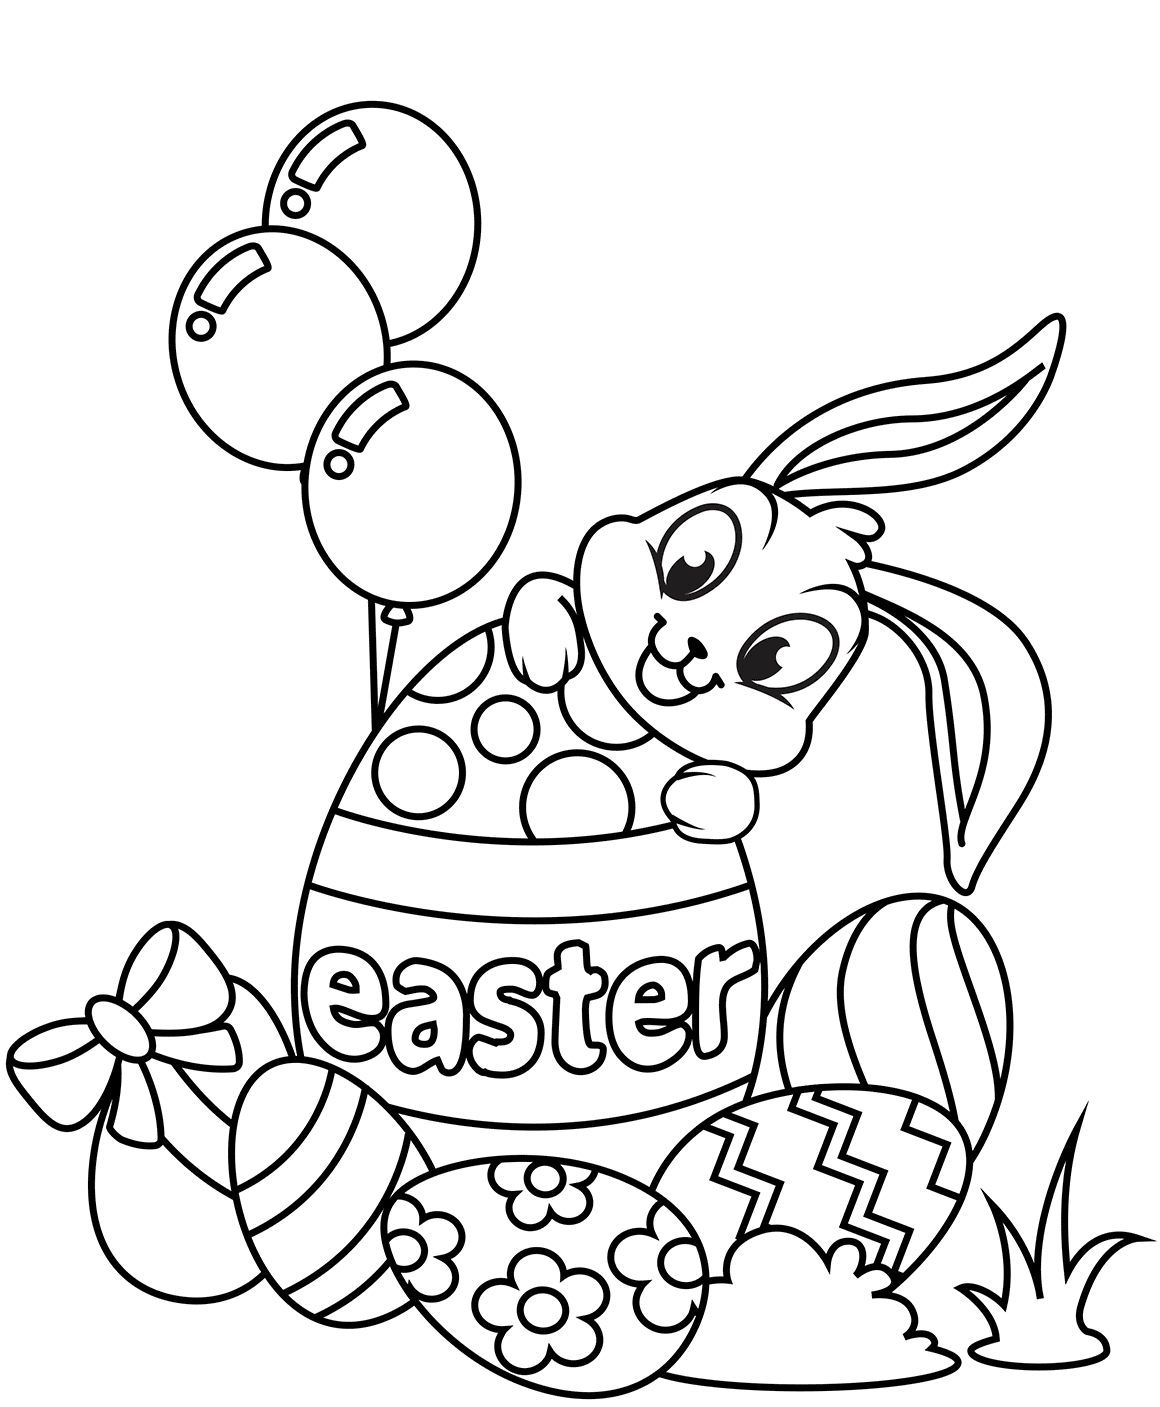 easter bunny coloring pictures 30 free easter bunny coloring pages printable easter bunny pictures coloring